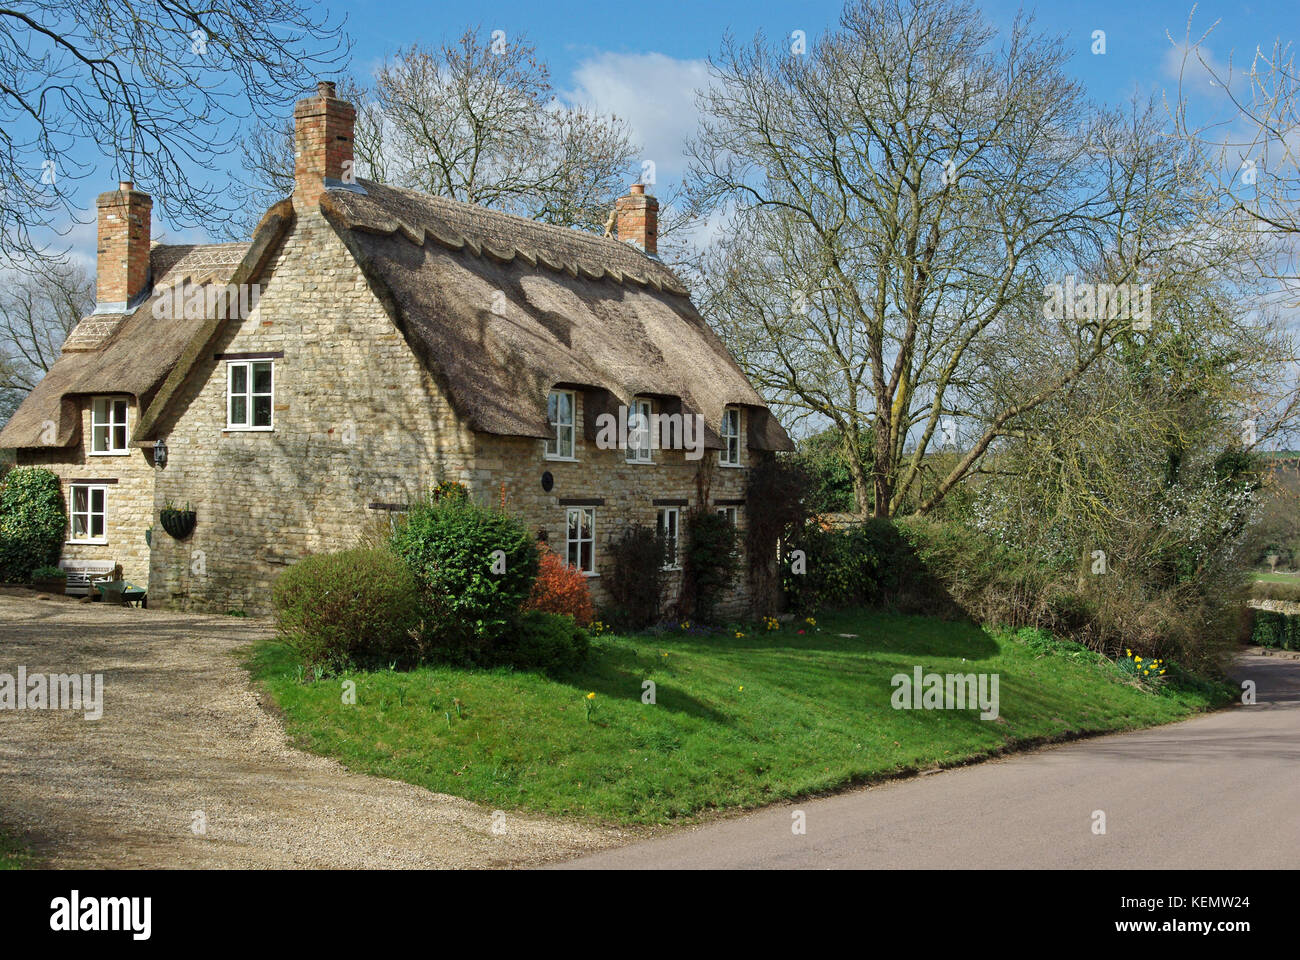 Detached house, with chimneys and a thatched roof, on the outskirts of the village of Harringworth, Northamptonshire, Stock Photo